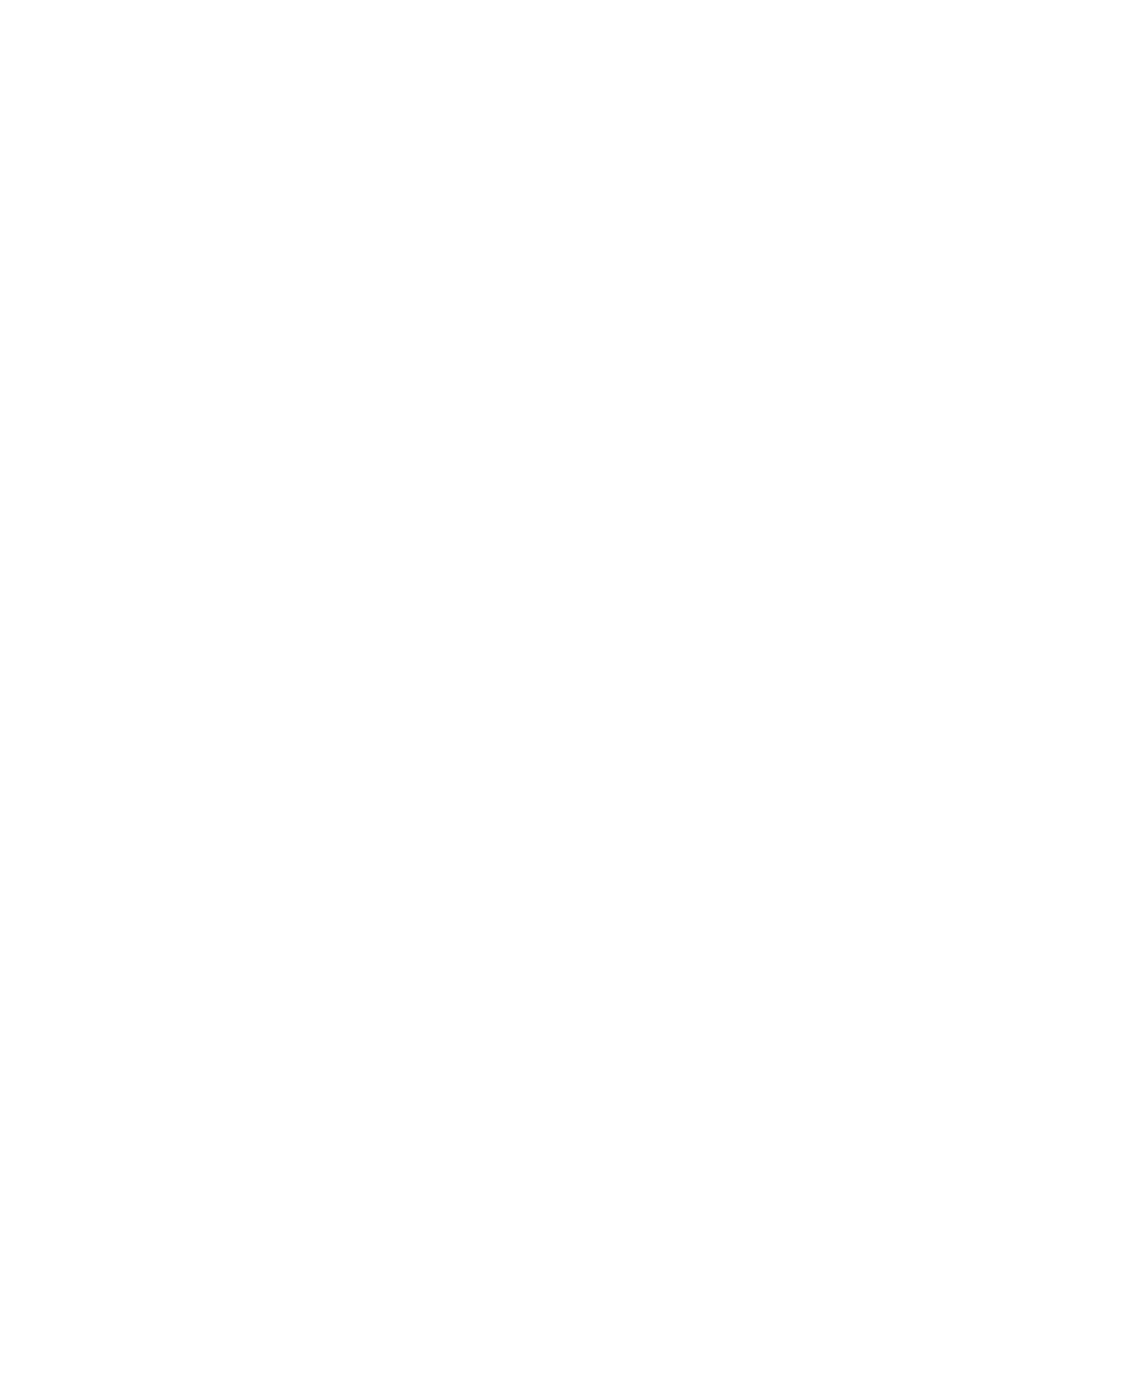 About wolves